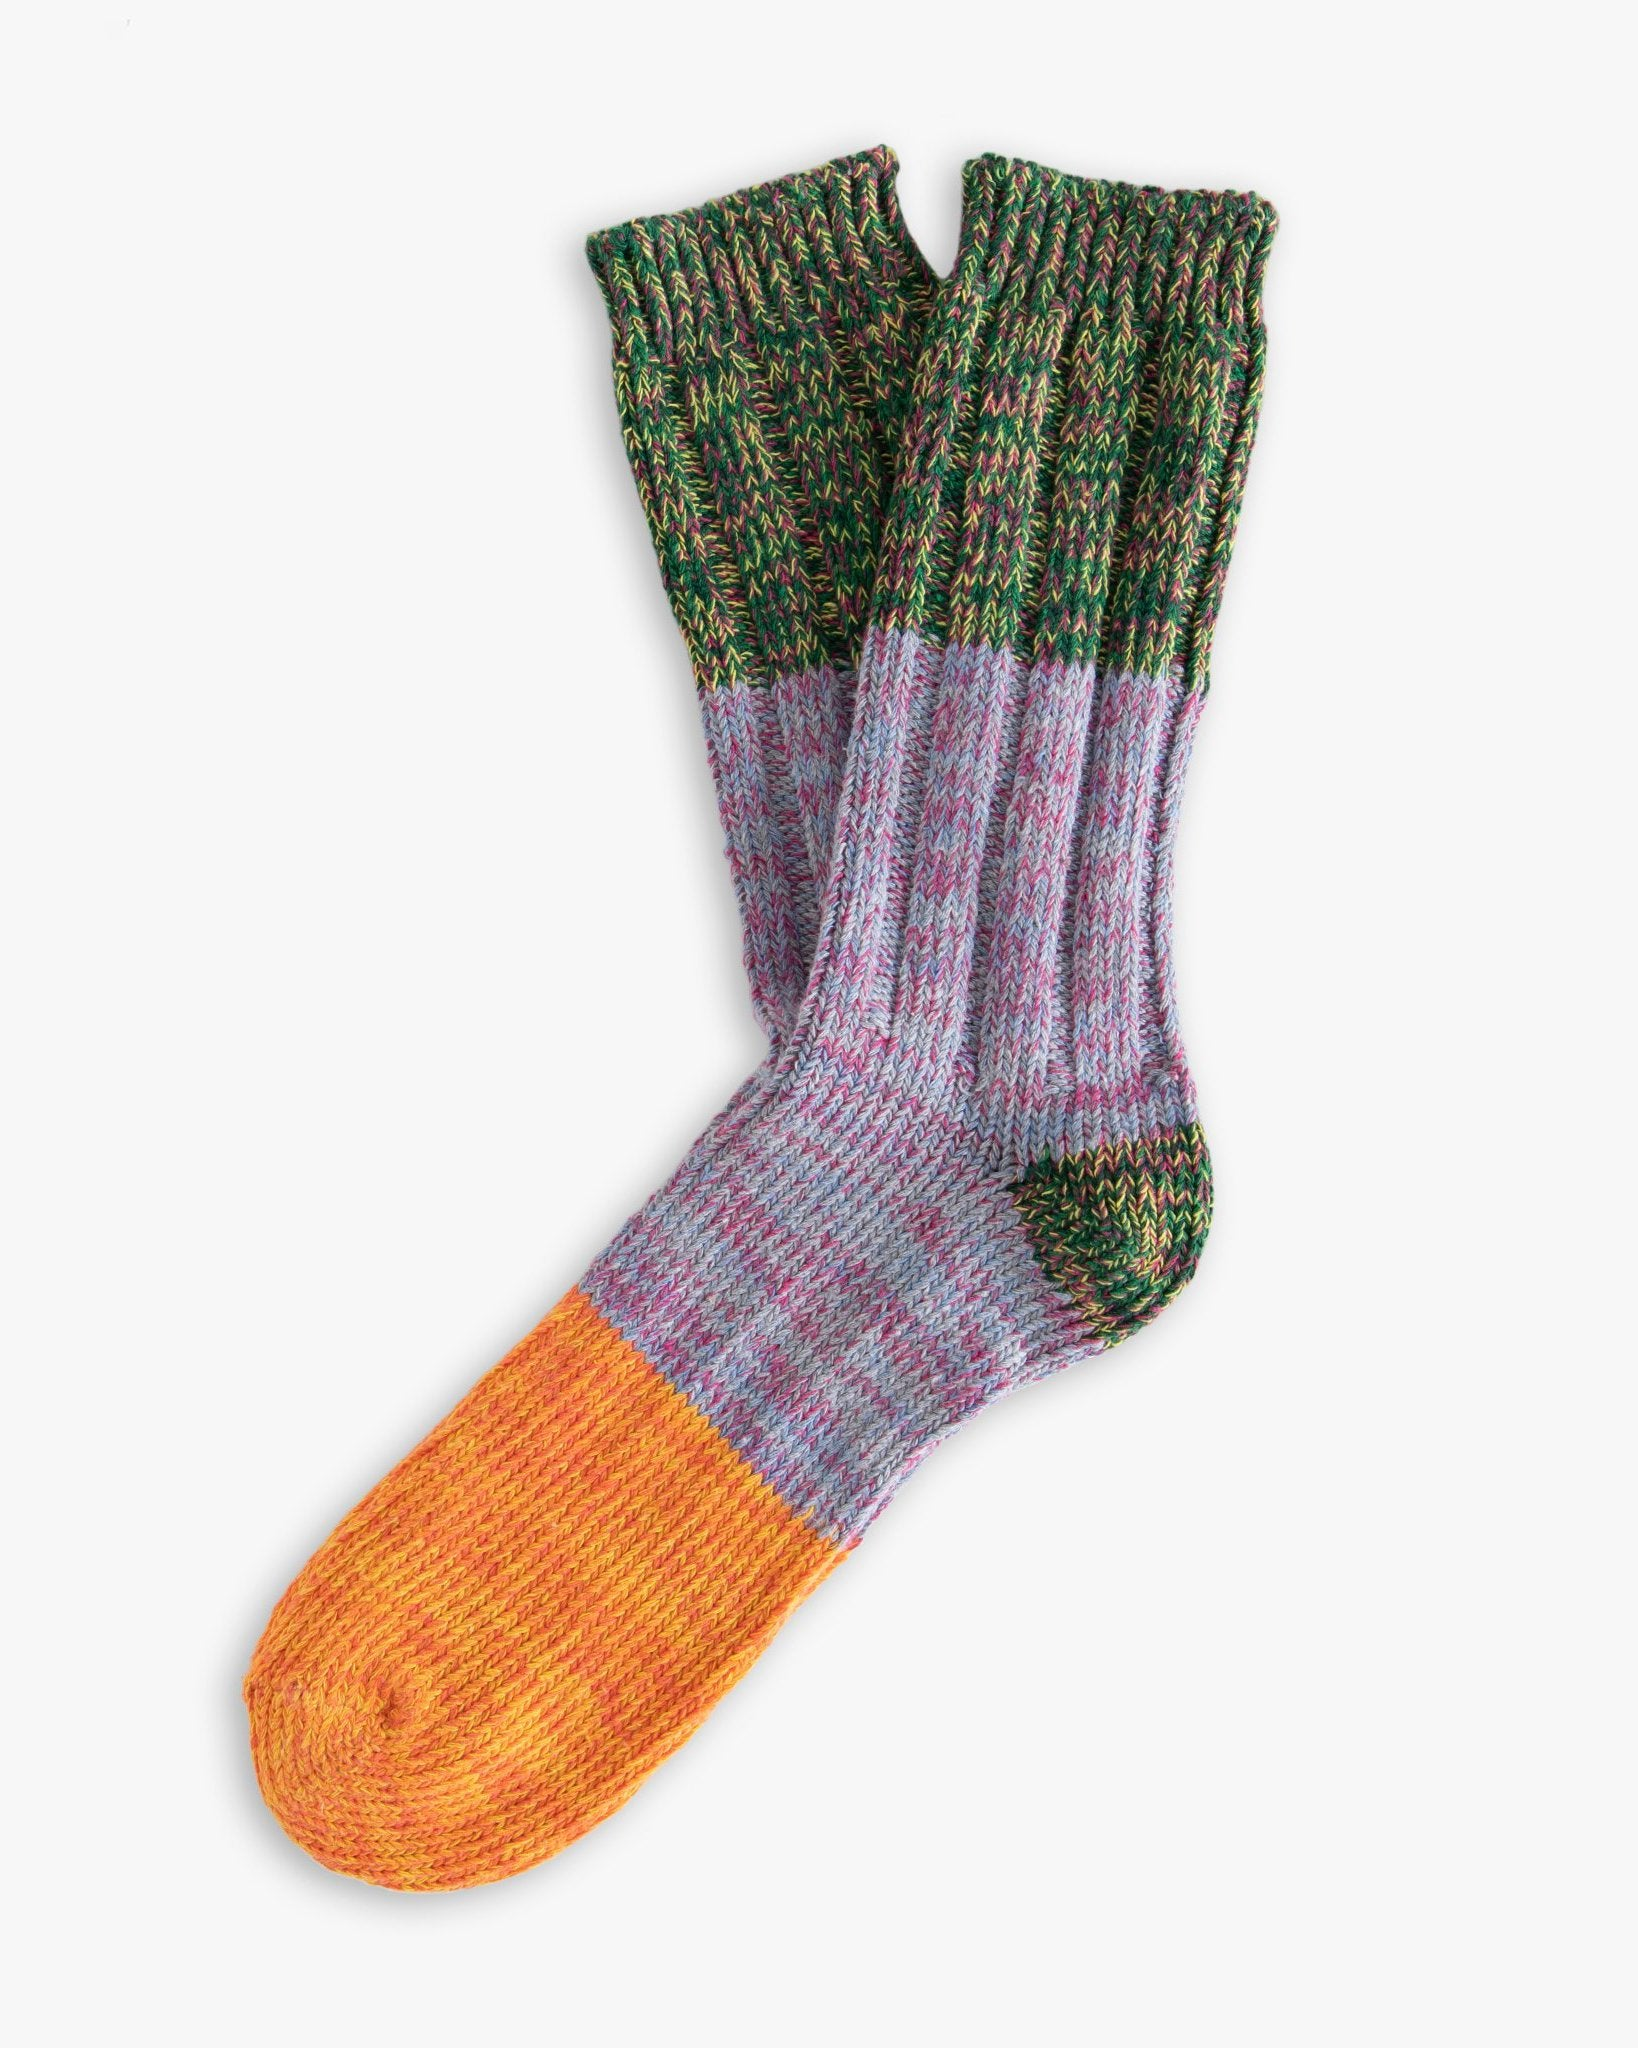 Thunders Love Charlie Collection Socks - Colour 0110120 Thunders Love Socks